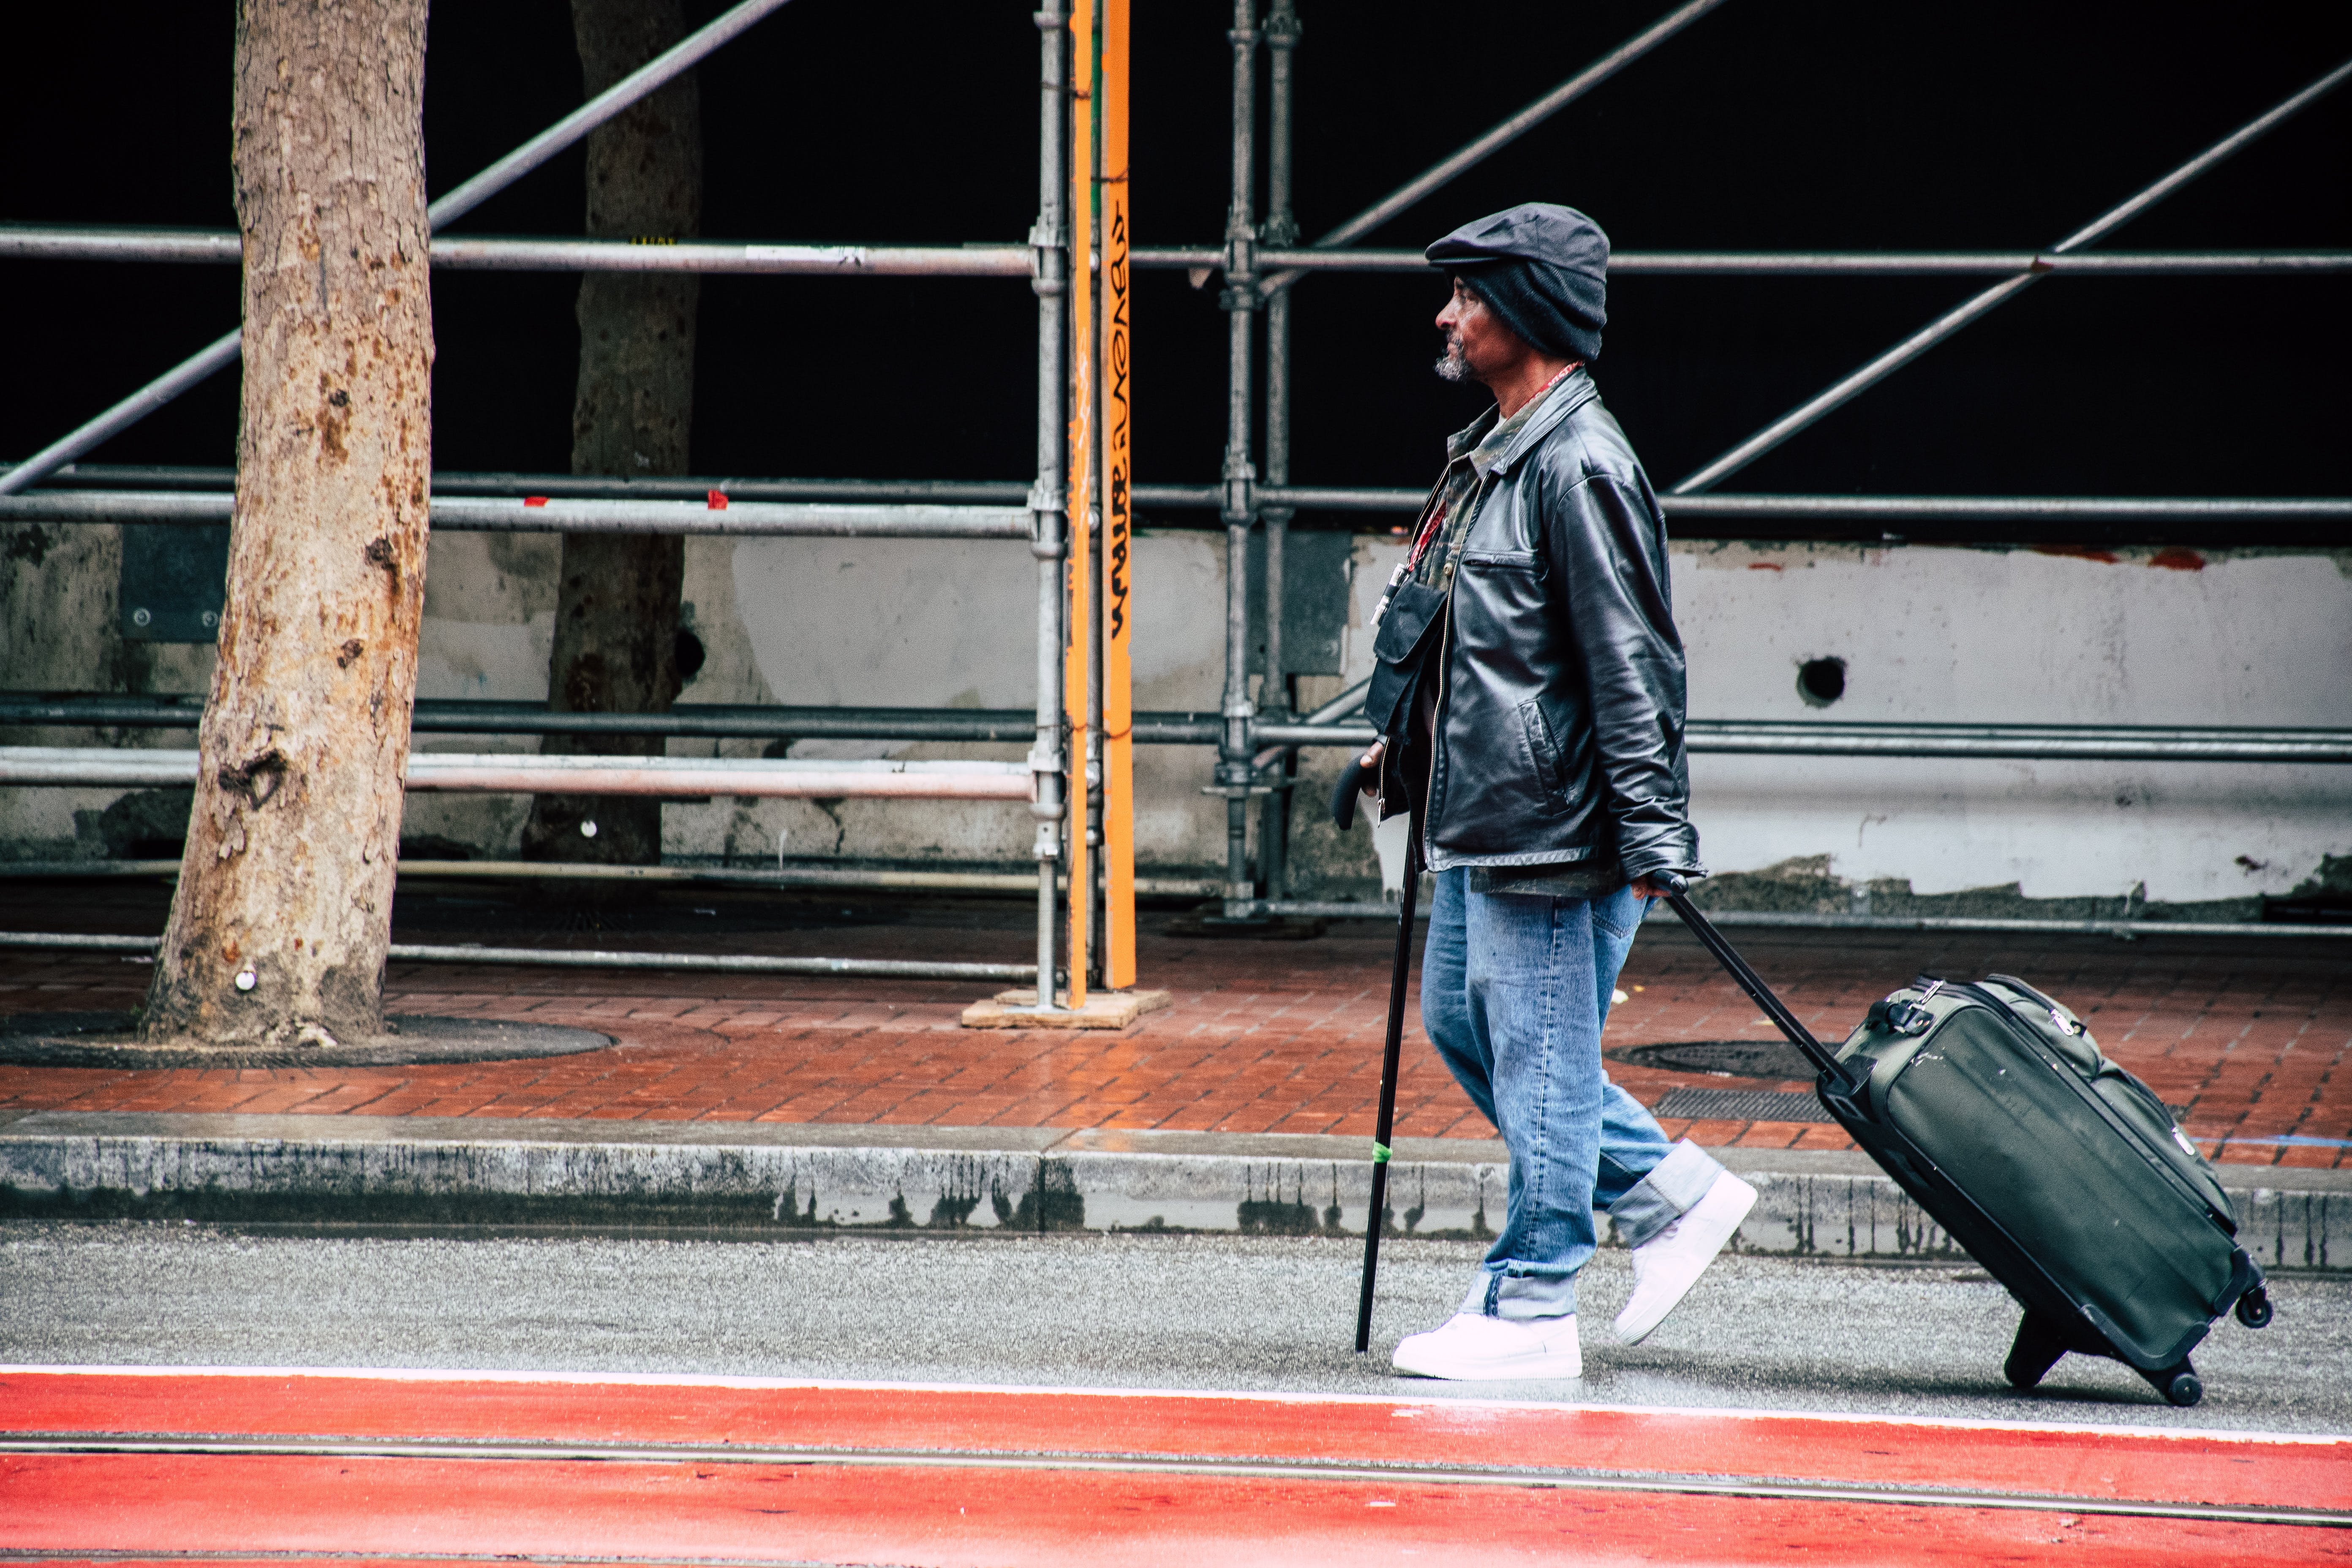 Walking Man in Black Leather Jacket and Blue Denim Pants Holding Luggage Bag